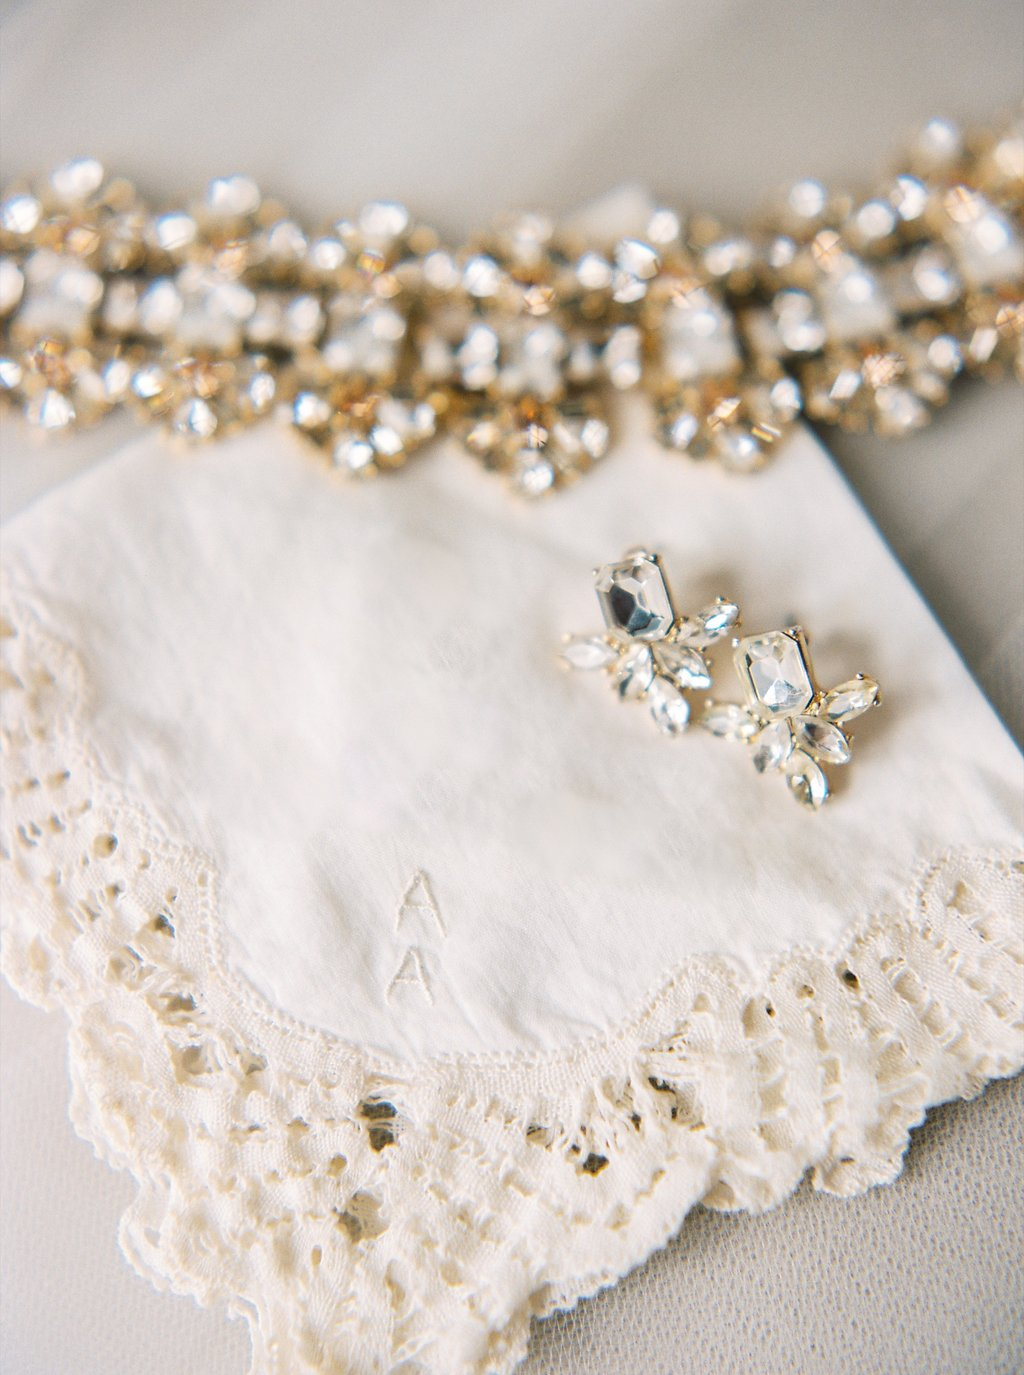 Jeweled Earrings, Kate Spade Bridal Necklace, and Heirloom Handkerchief | Simply Jessica Marie's Bridal Accessories | Photo by Perry Vaile Photography